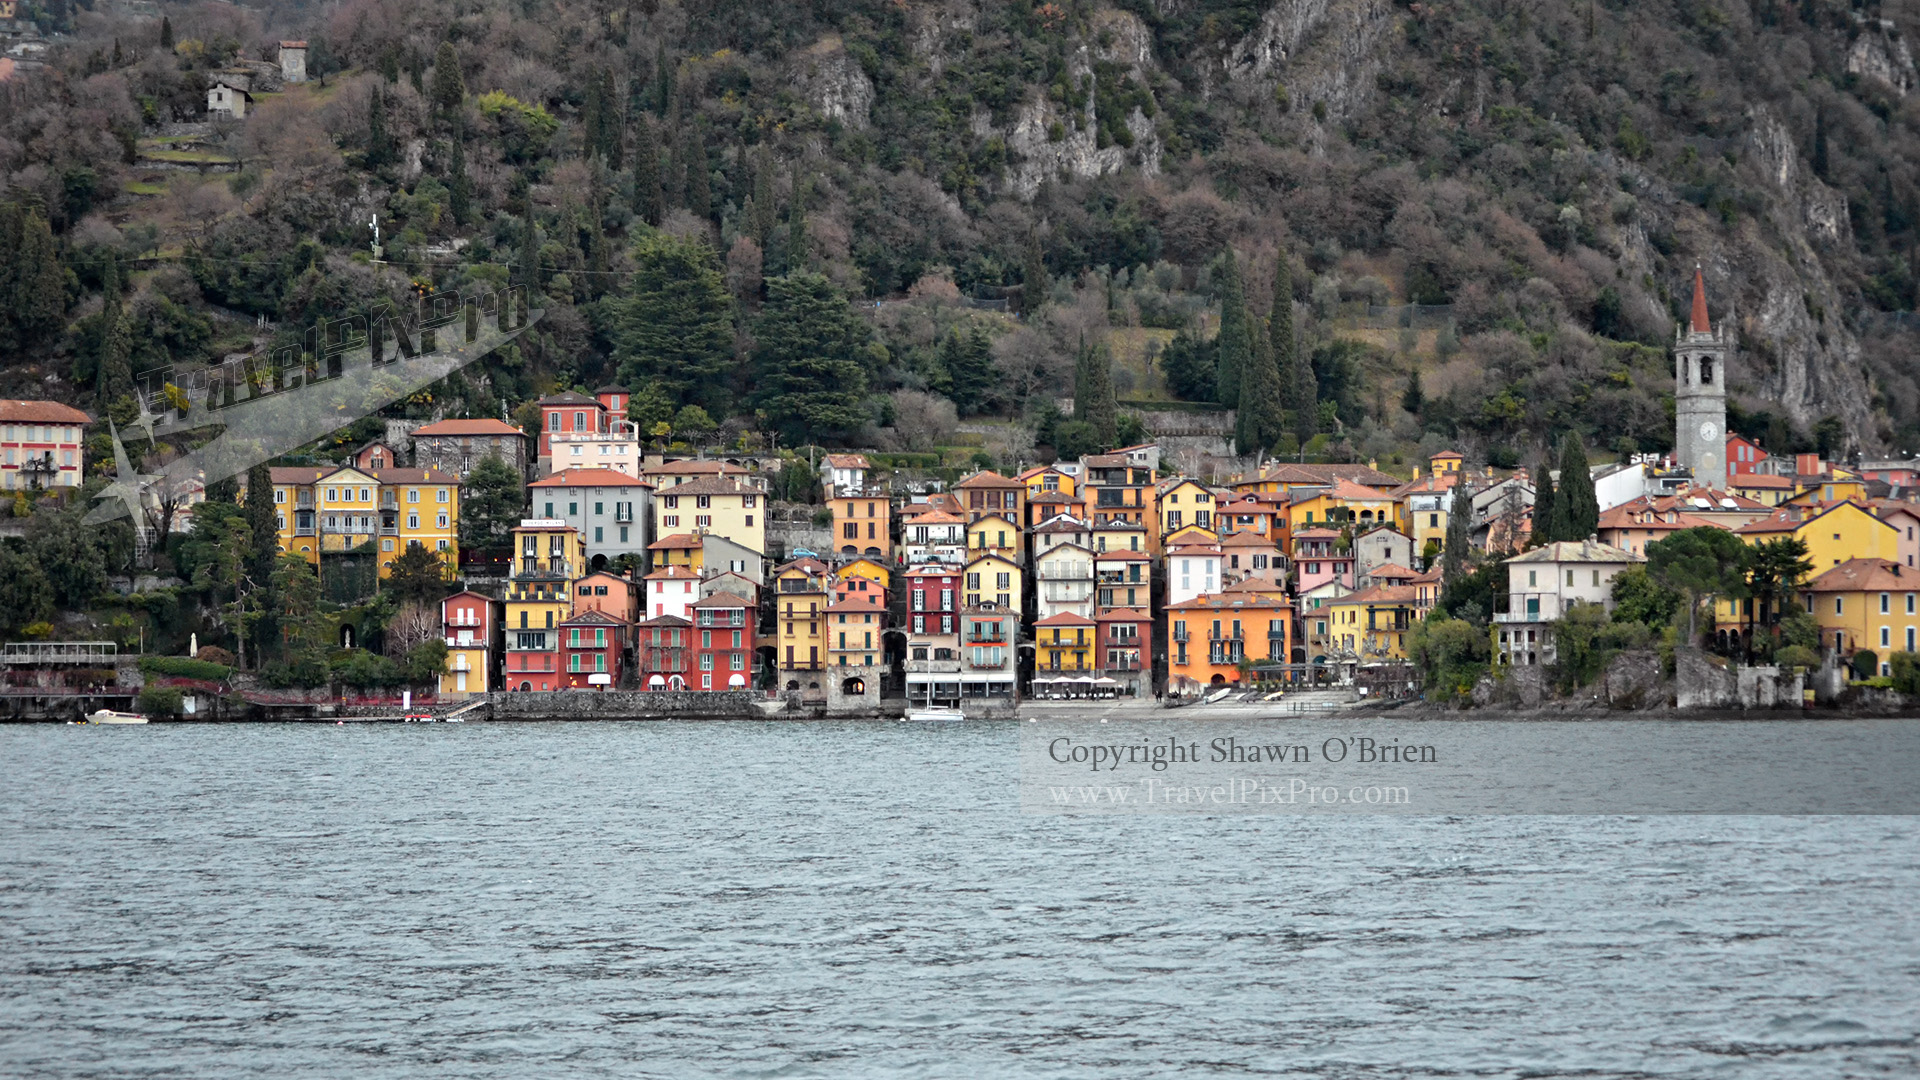 Lake Como Lakefront Village